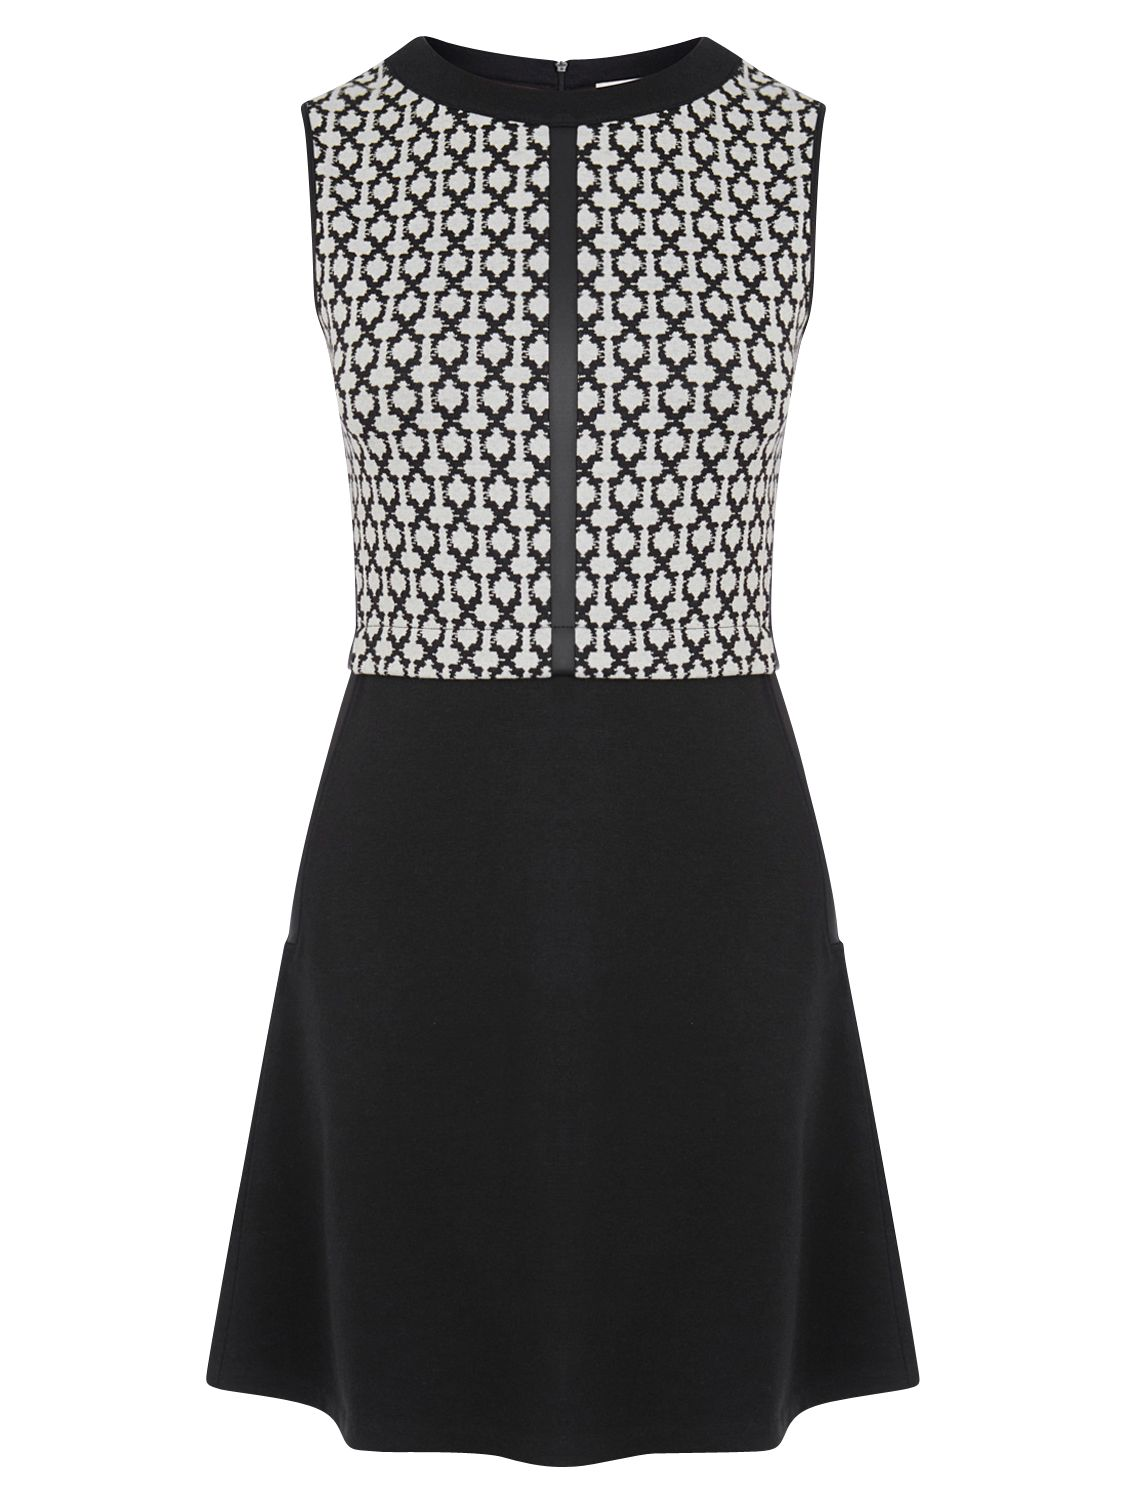 oasis grid check dress black/white, oasis, grid, check, dress, black/white, s|m, special offers, womenswear offers, 30% off selected oasis, women, womens dresses, womens dresses offers, 1865853